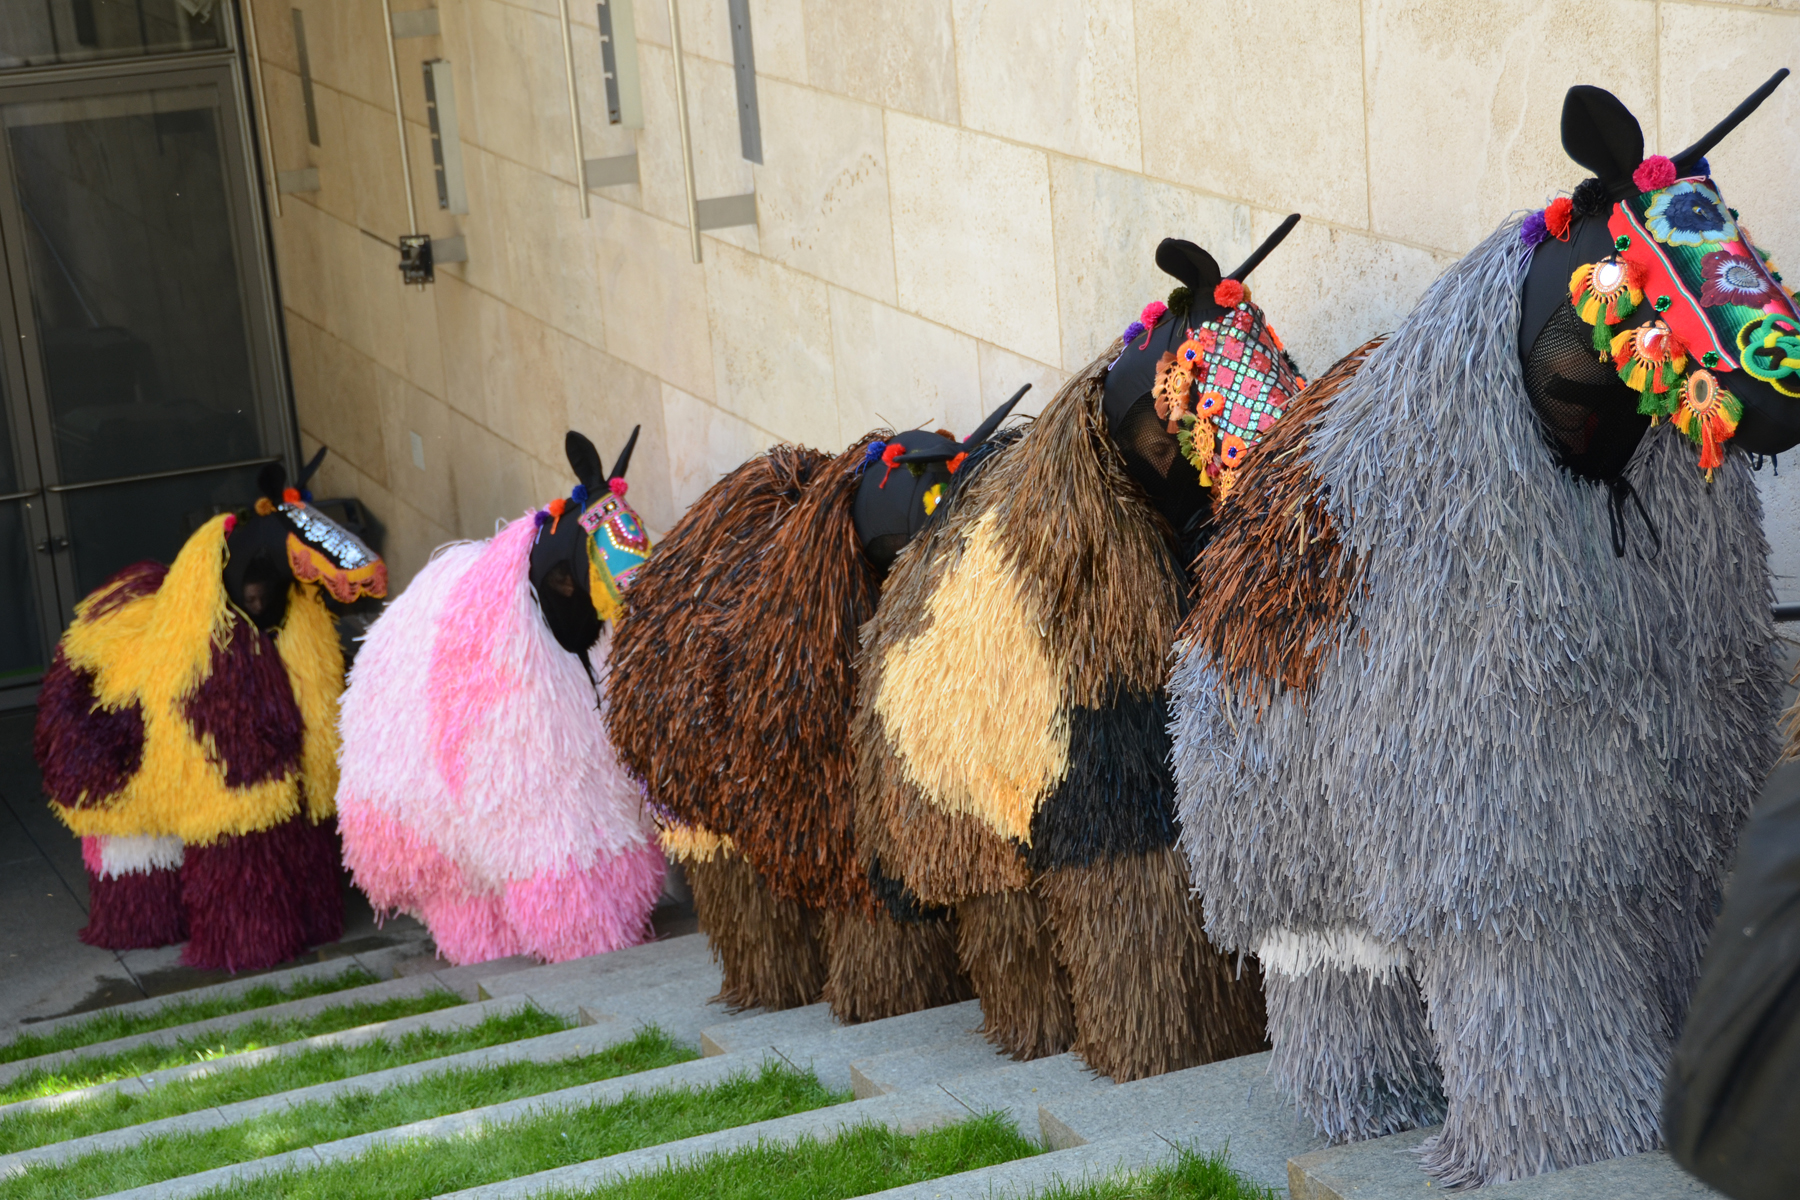 Nick Cave's Heard visits the Dallas Arts District